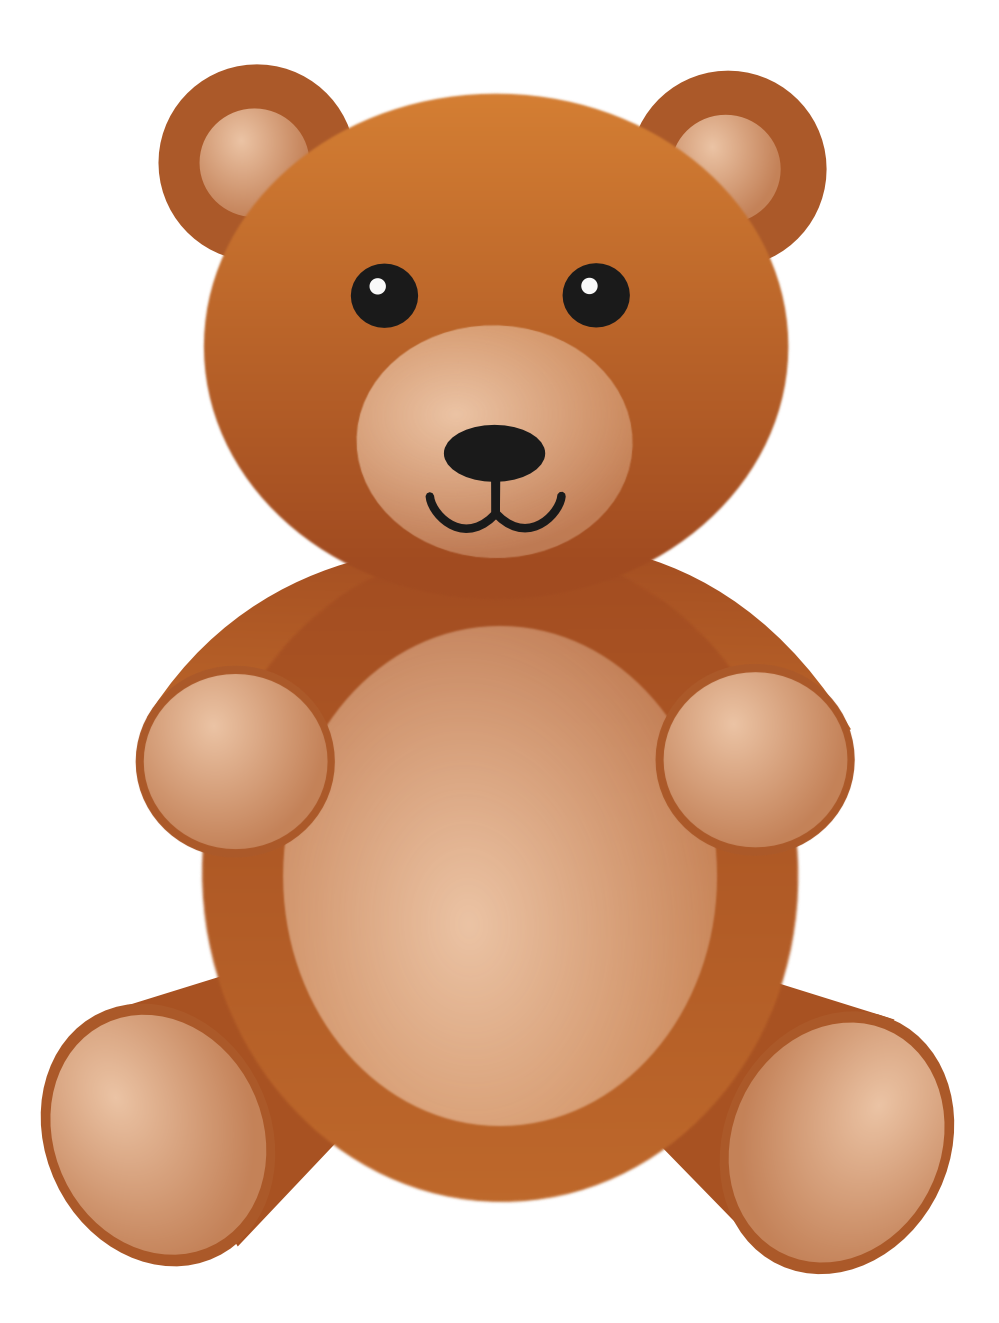 Images best free icons. Kiss clipart teddy bear